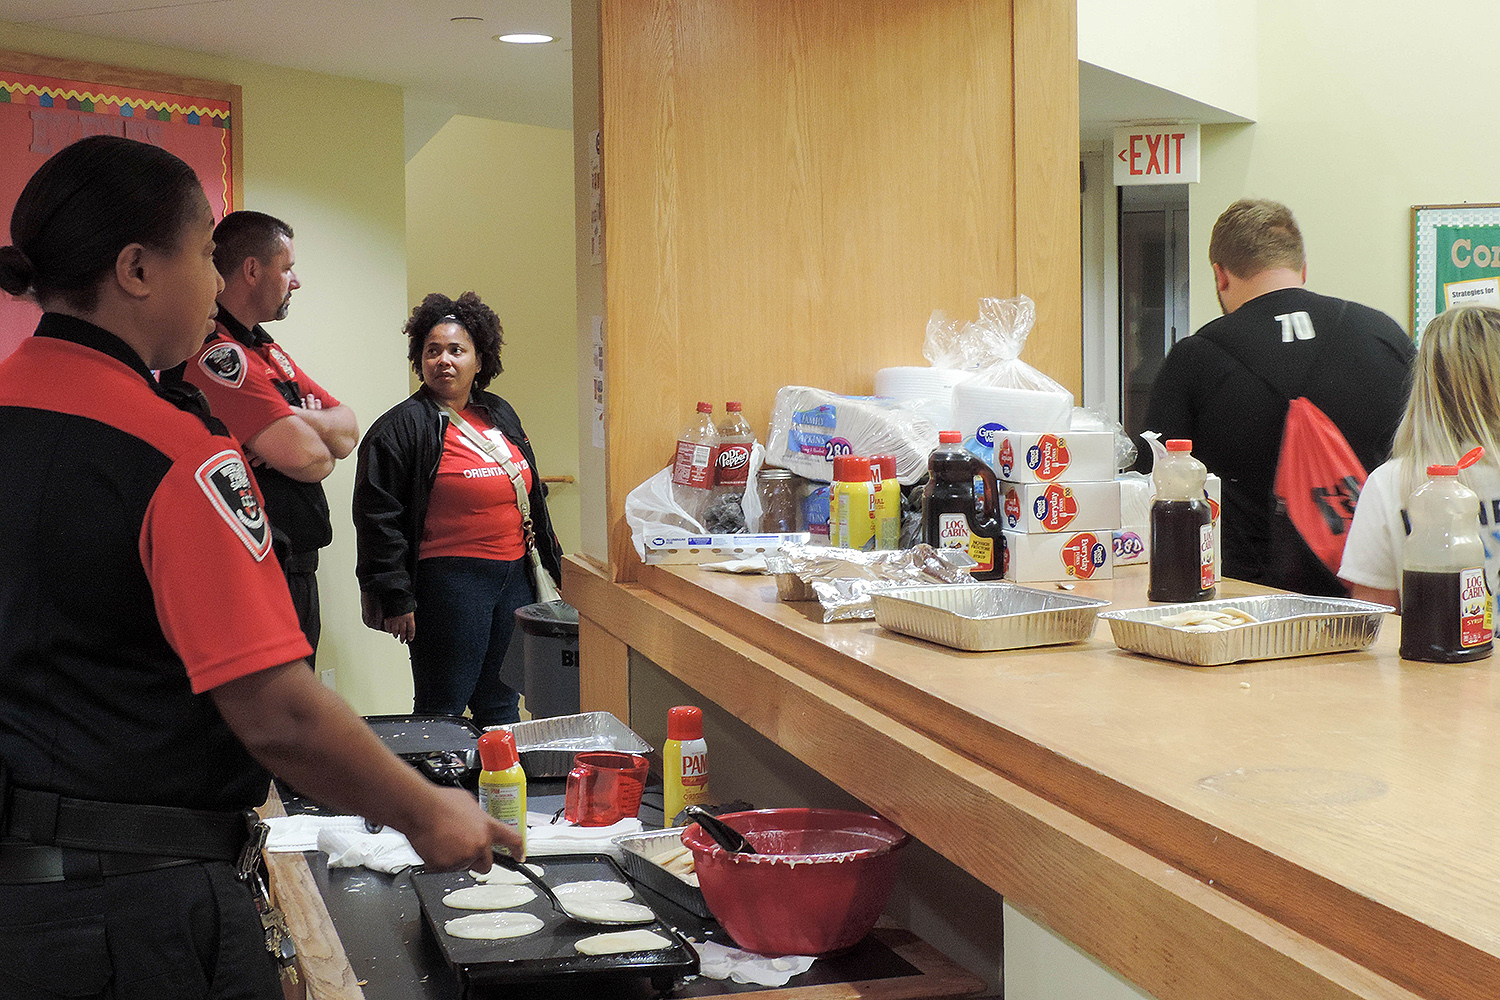 Second-shift Public Safety Officers cook pancakes in Bennet Hall.